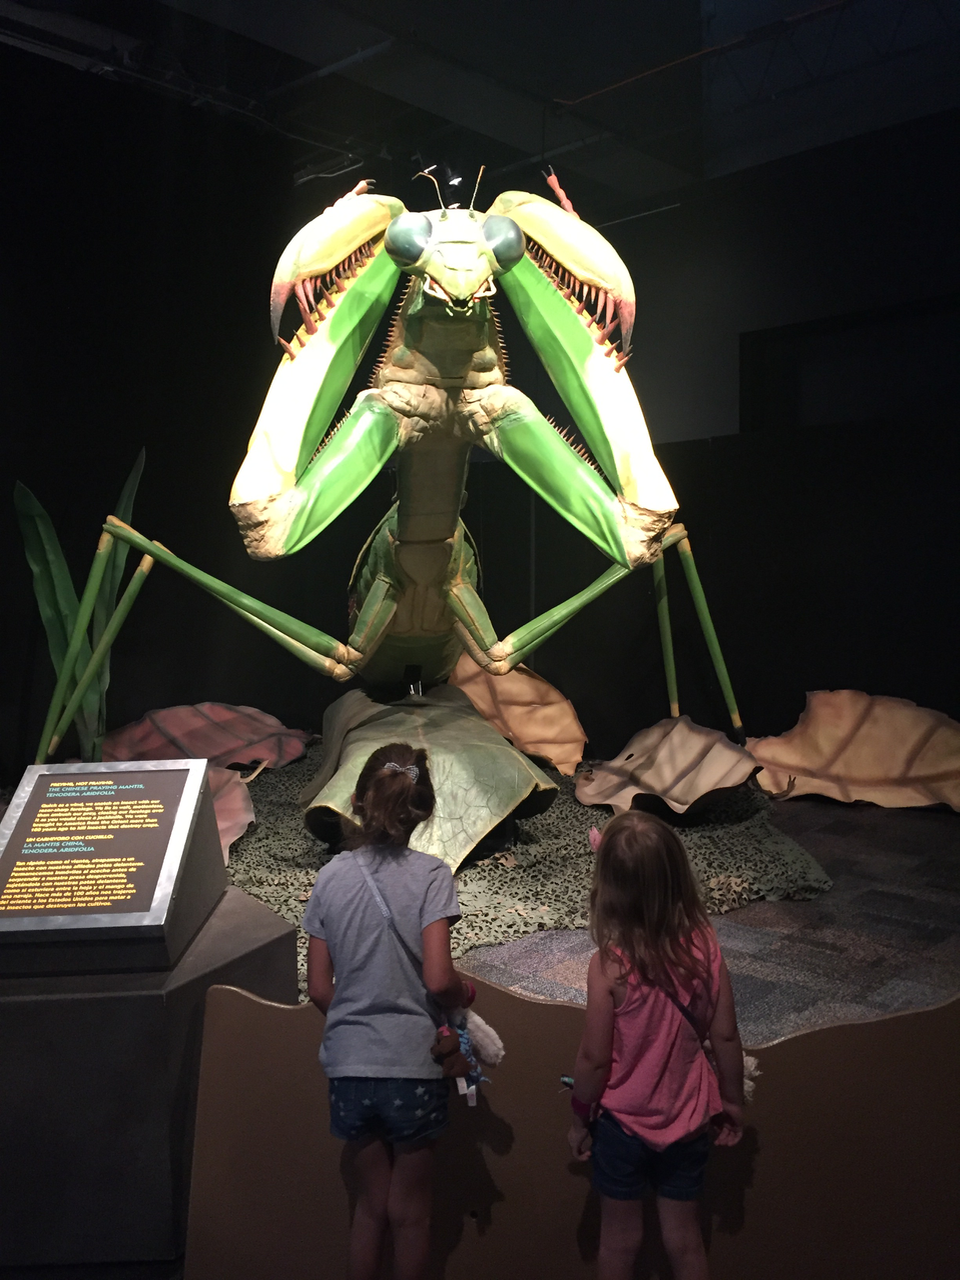 Science museum- bug exhibit